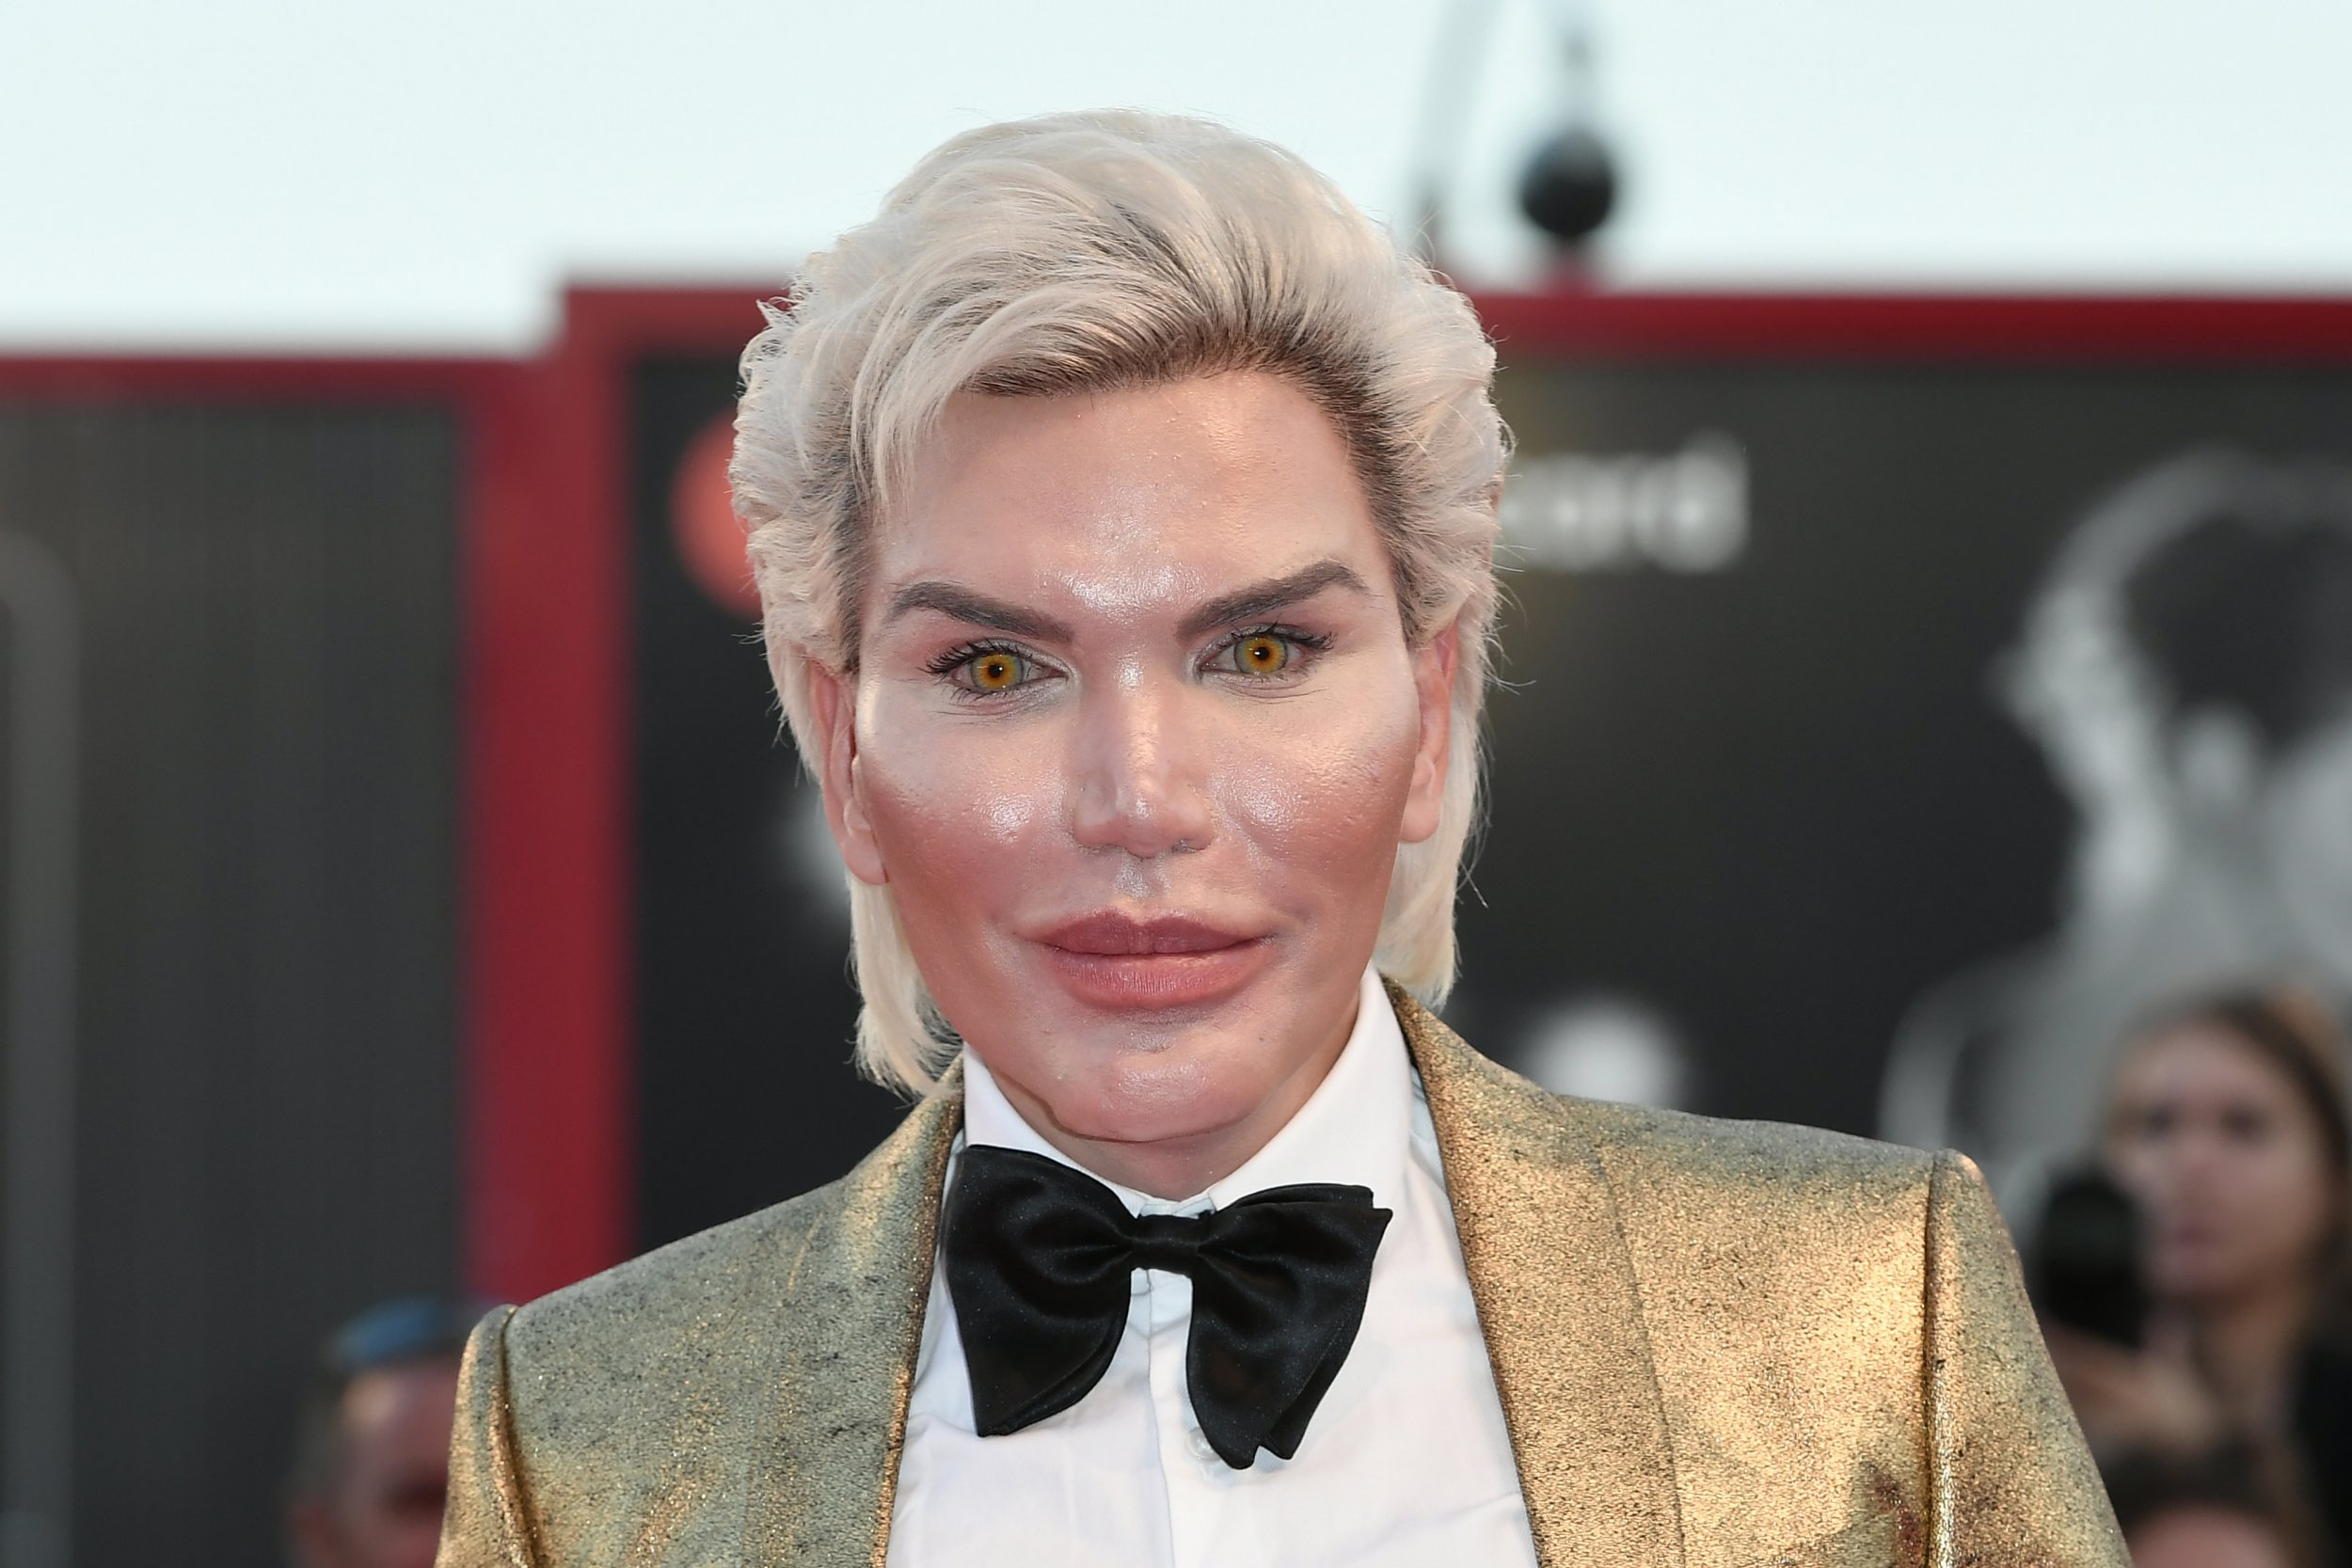 Rodrigo Alves offered £3.5million movie offer if he removes his penis in TV prank: 'I believed it was real'